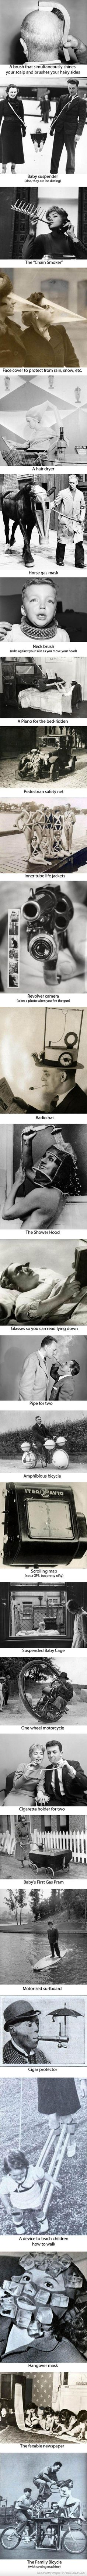 27 Ridiculous Inventions From The Past.